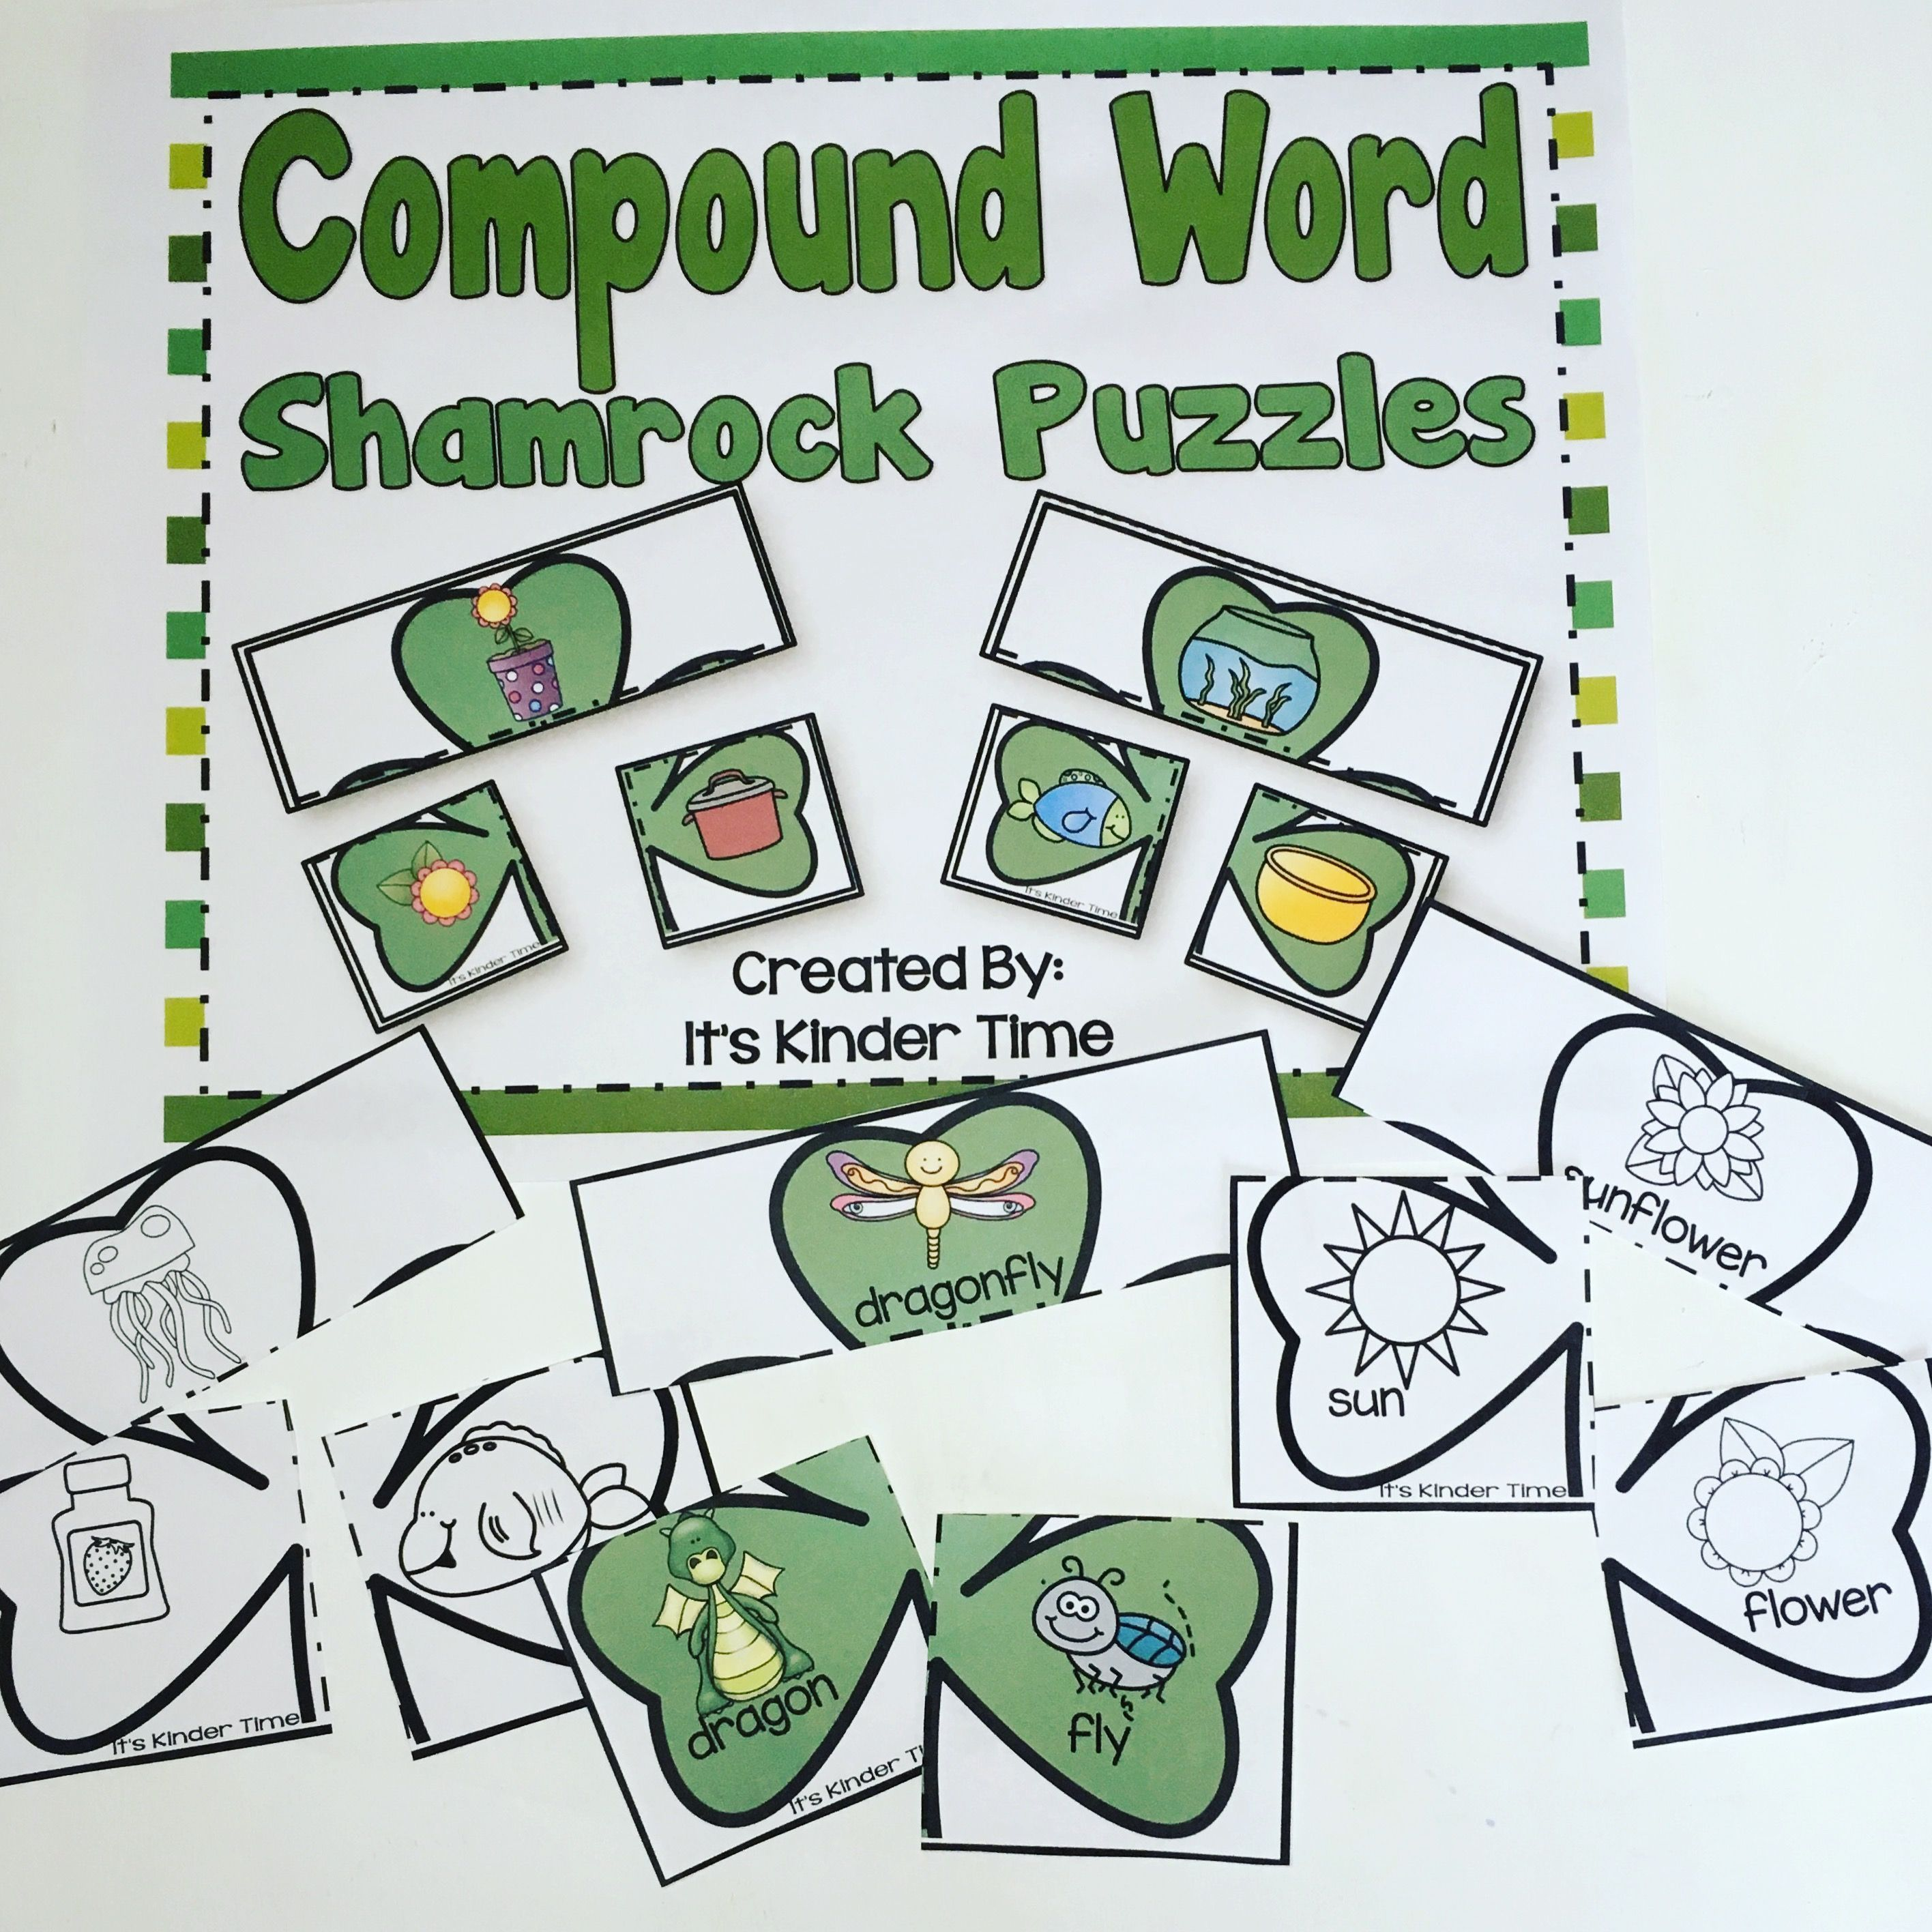 Compound Word Shamrock Puzzles